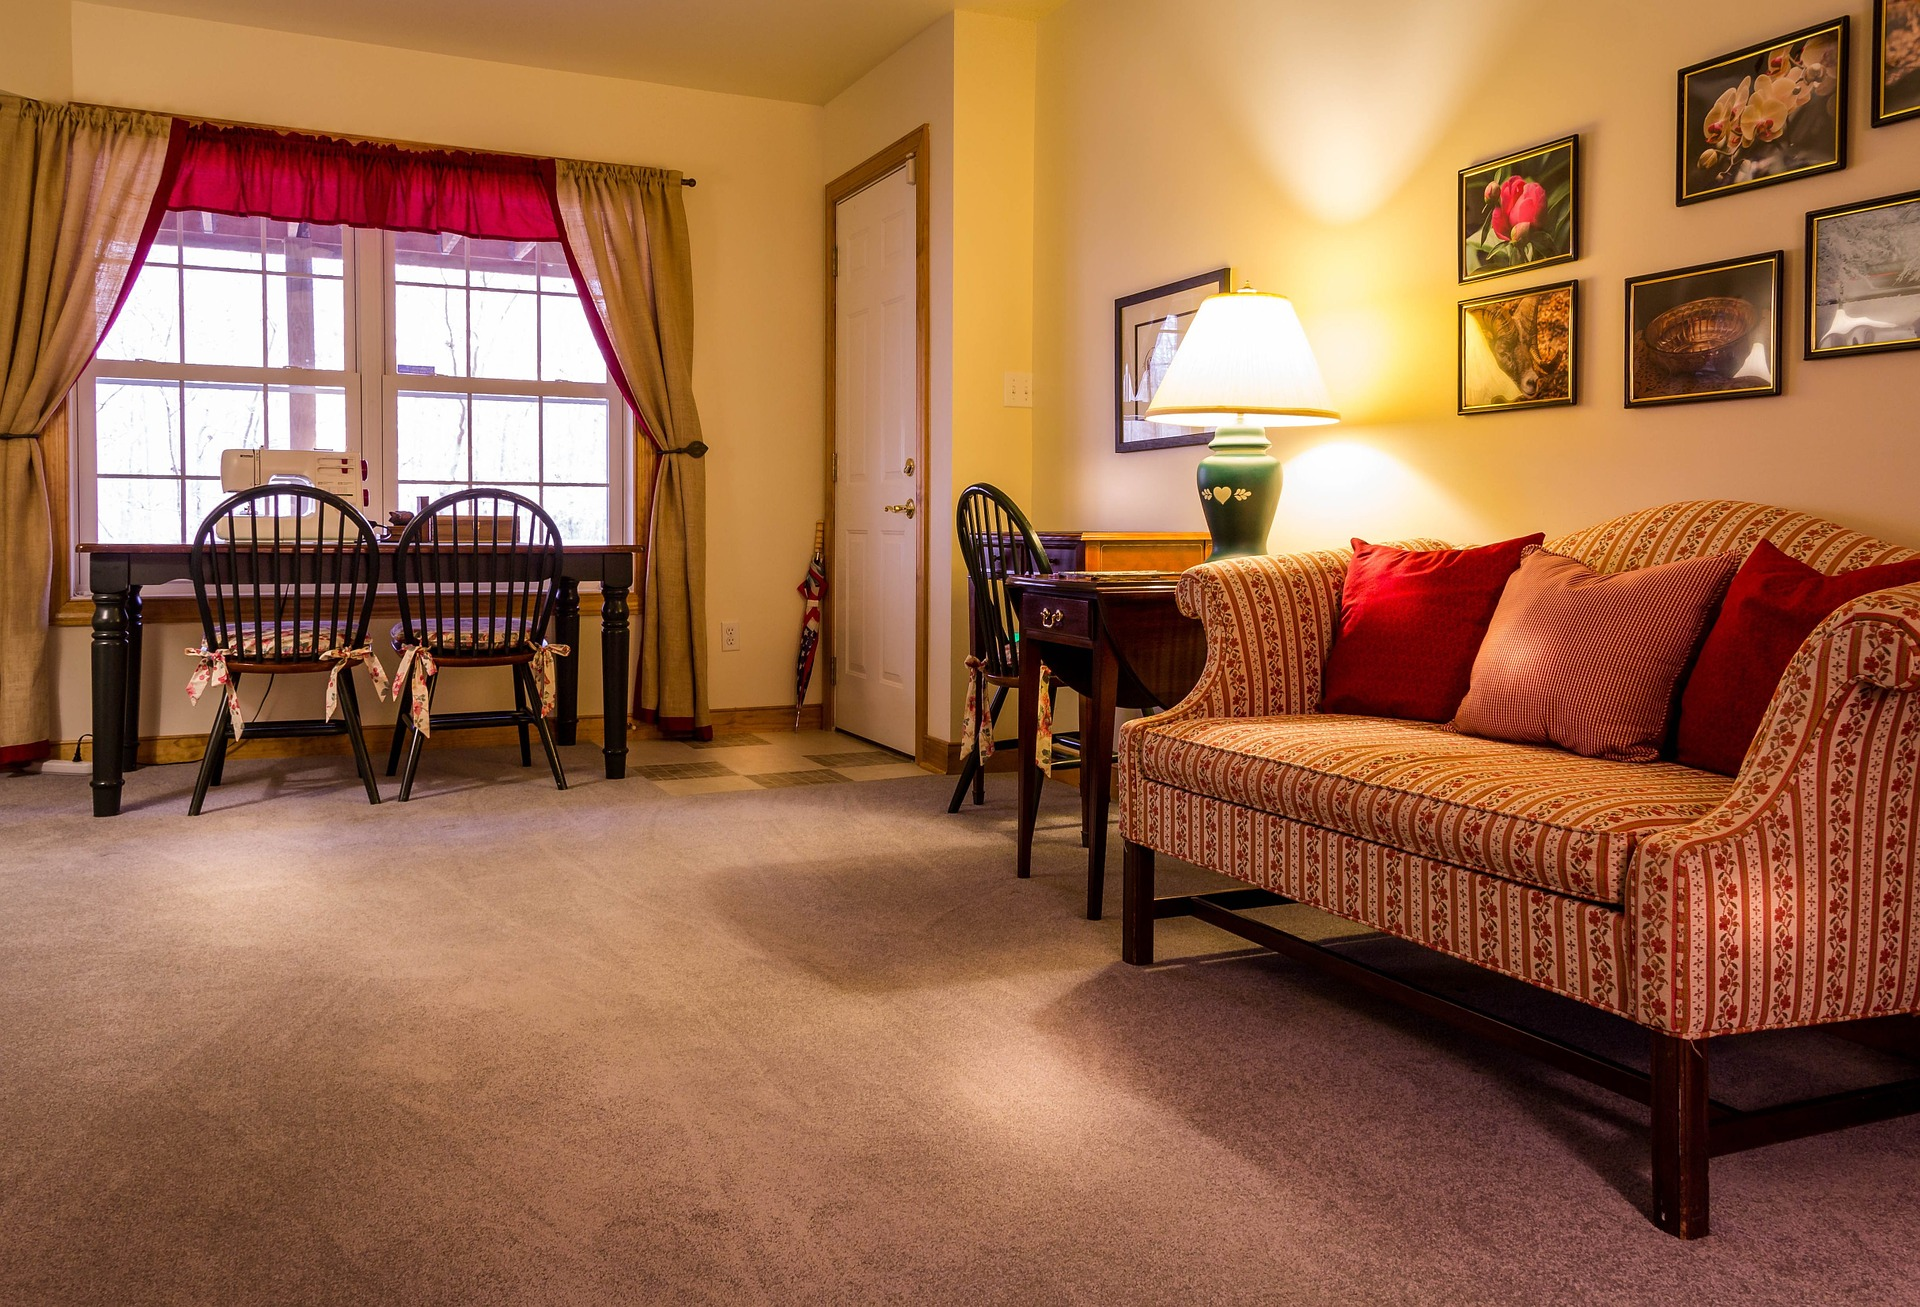 2 Tips to Choose the Appropriate Carpet for Your Home – Our Guide